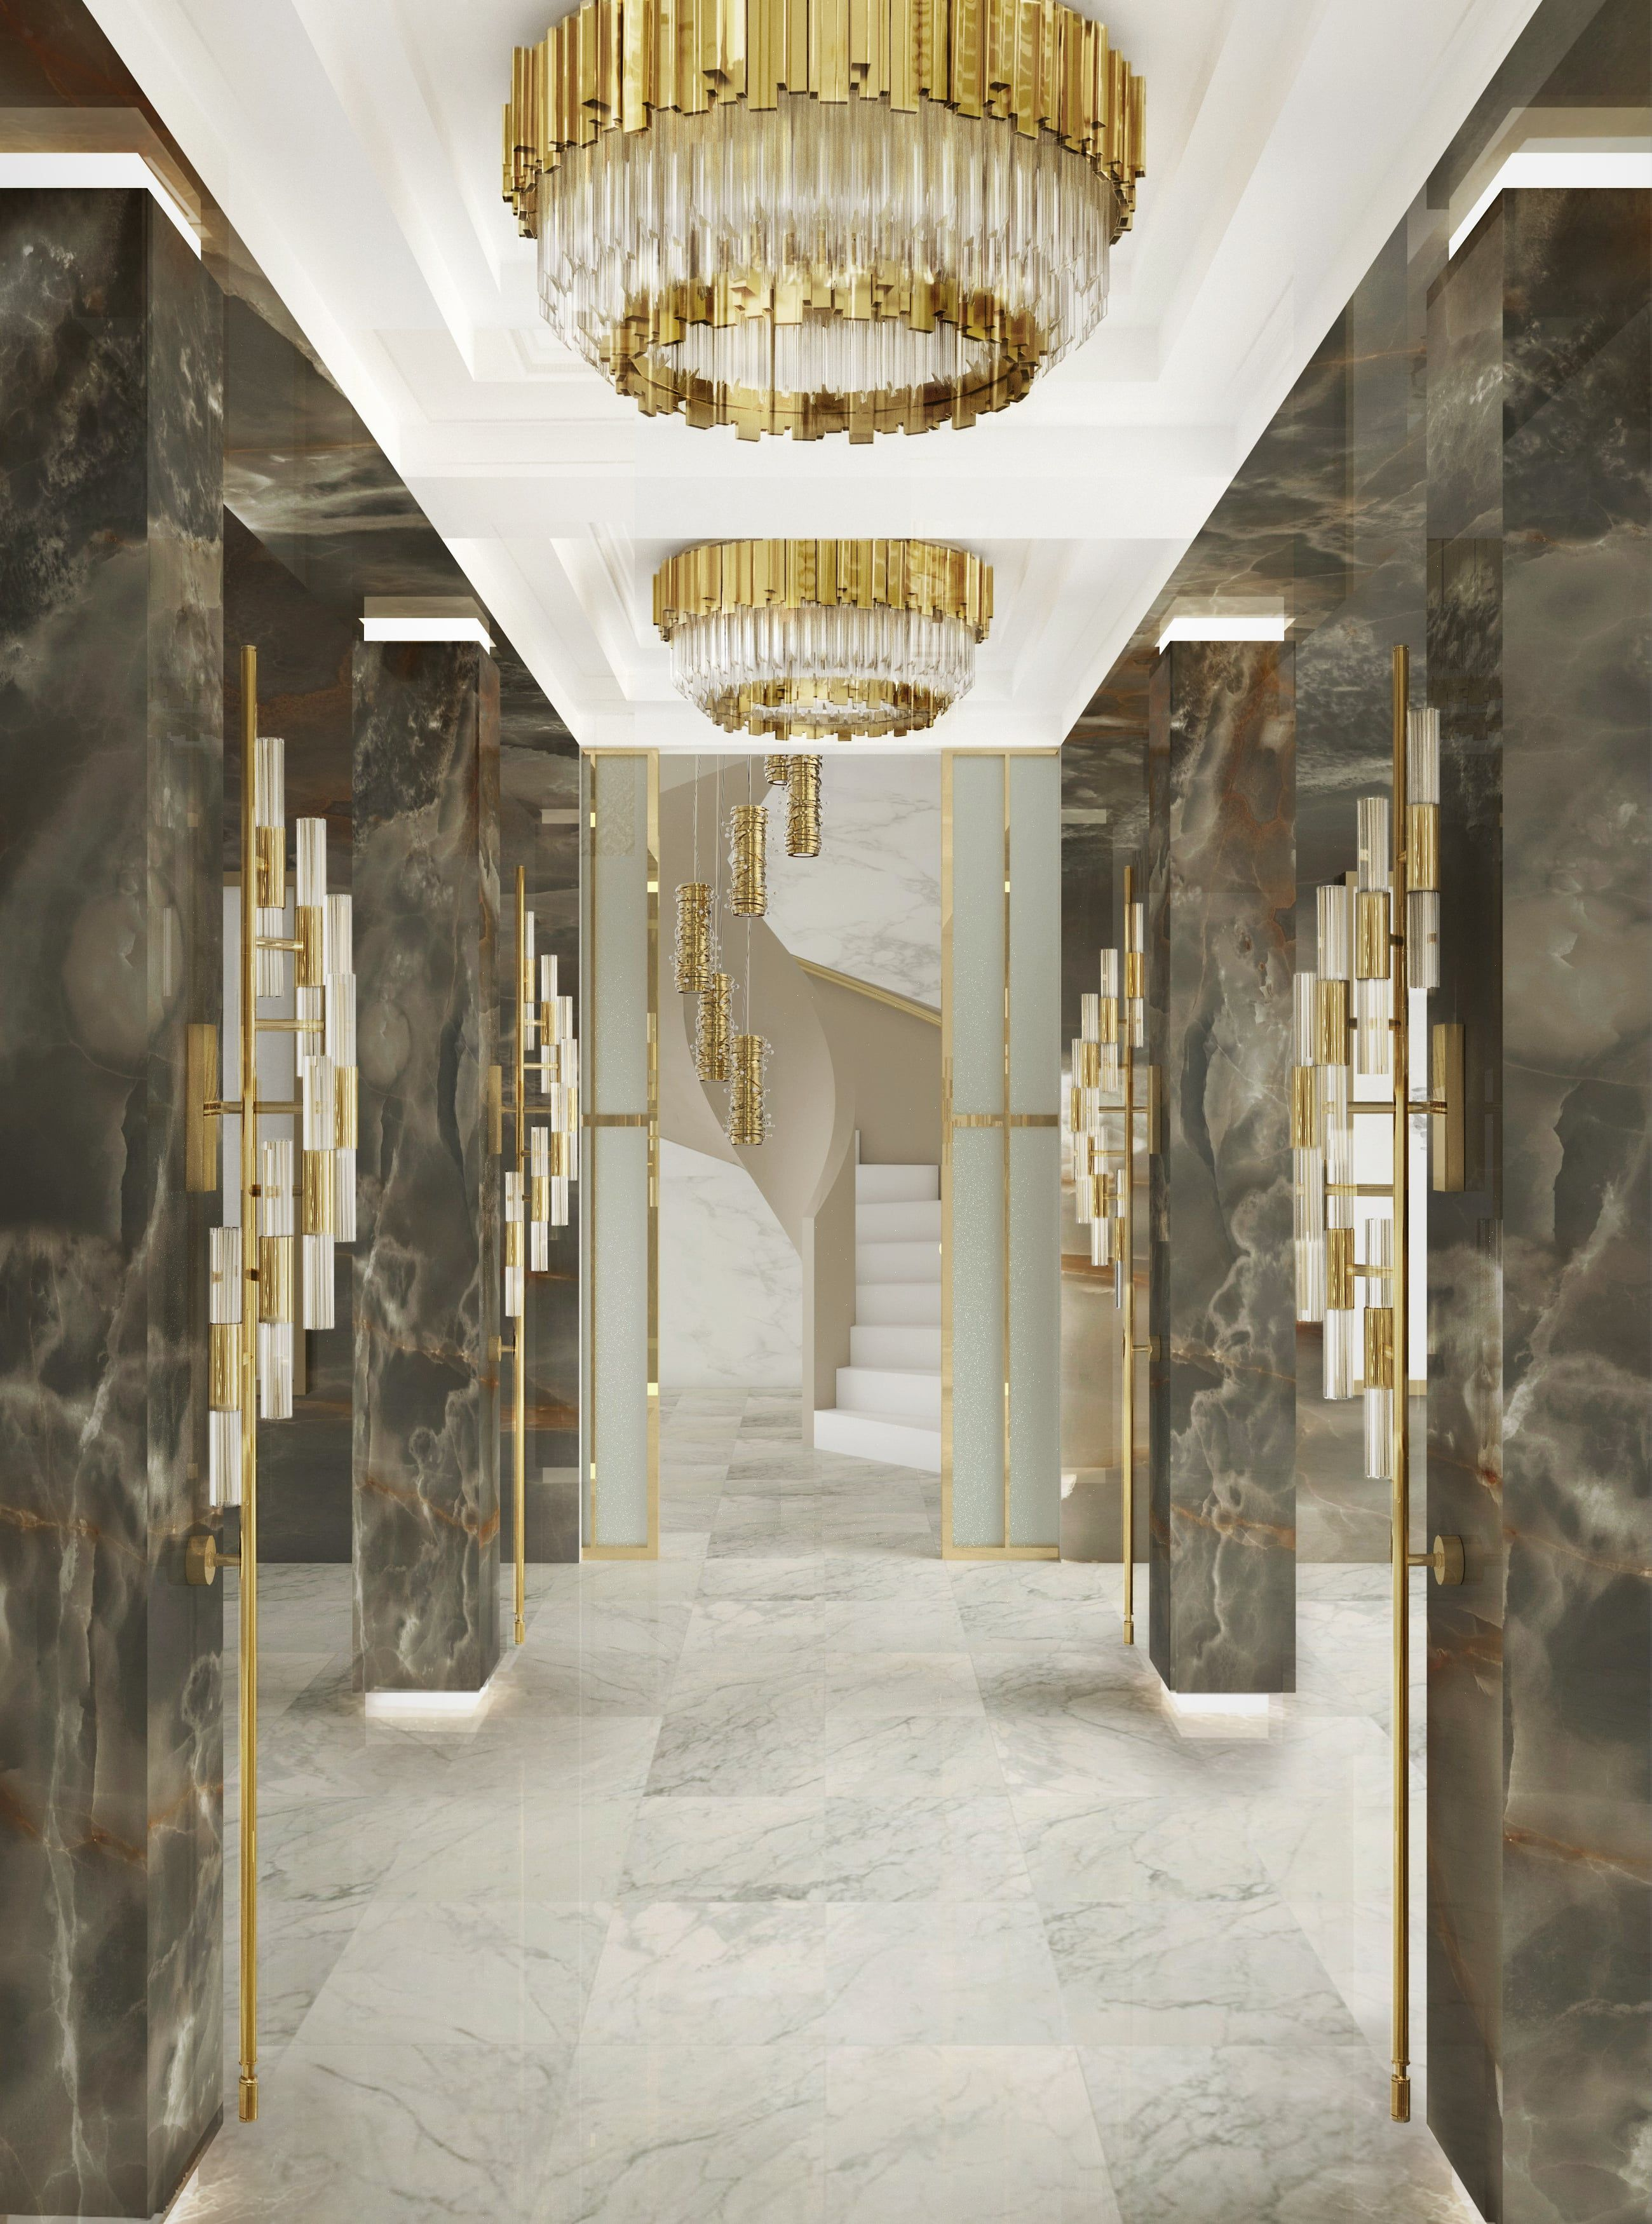 in vst top design image designers world let bangalore interior companies the firms free residential best classic